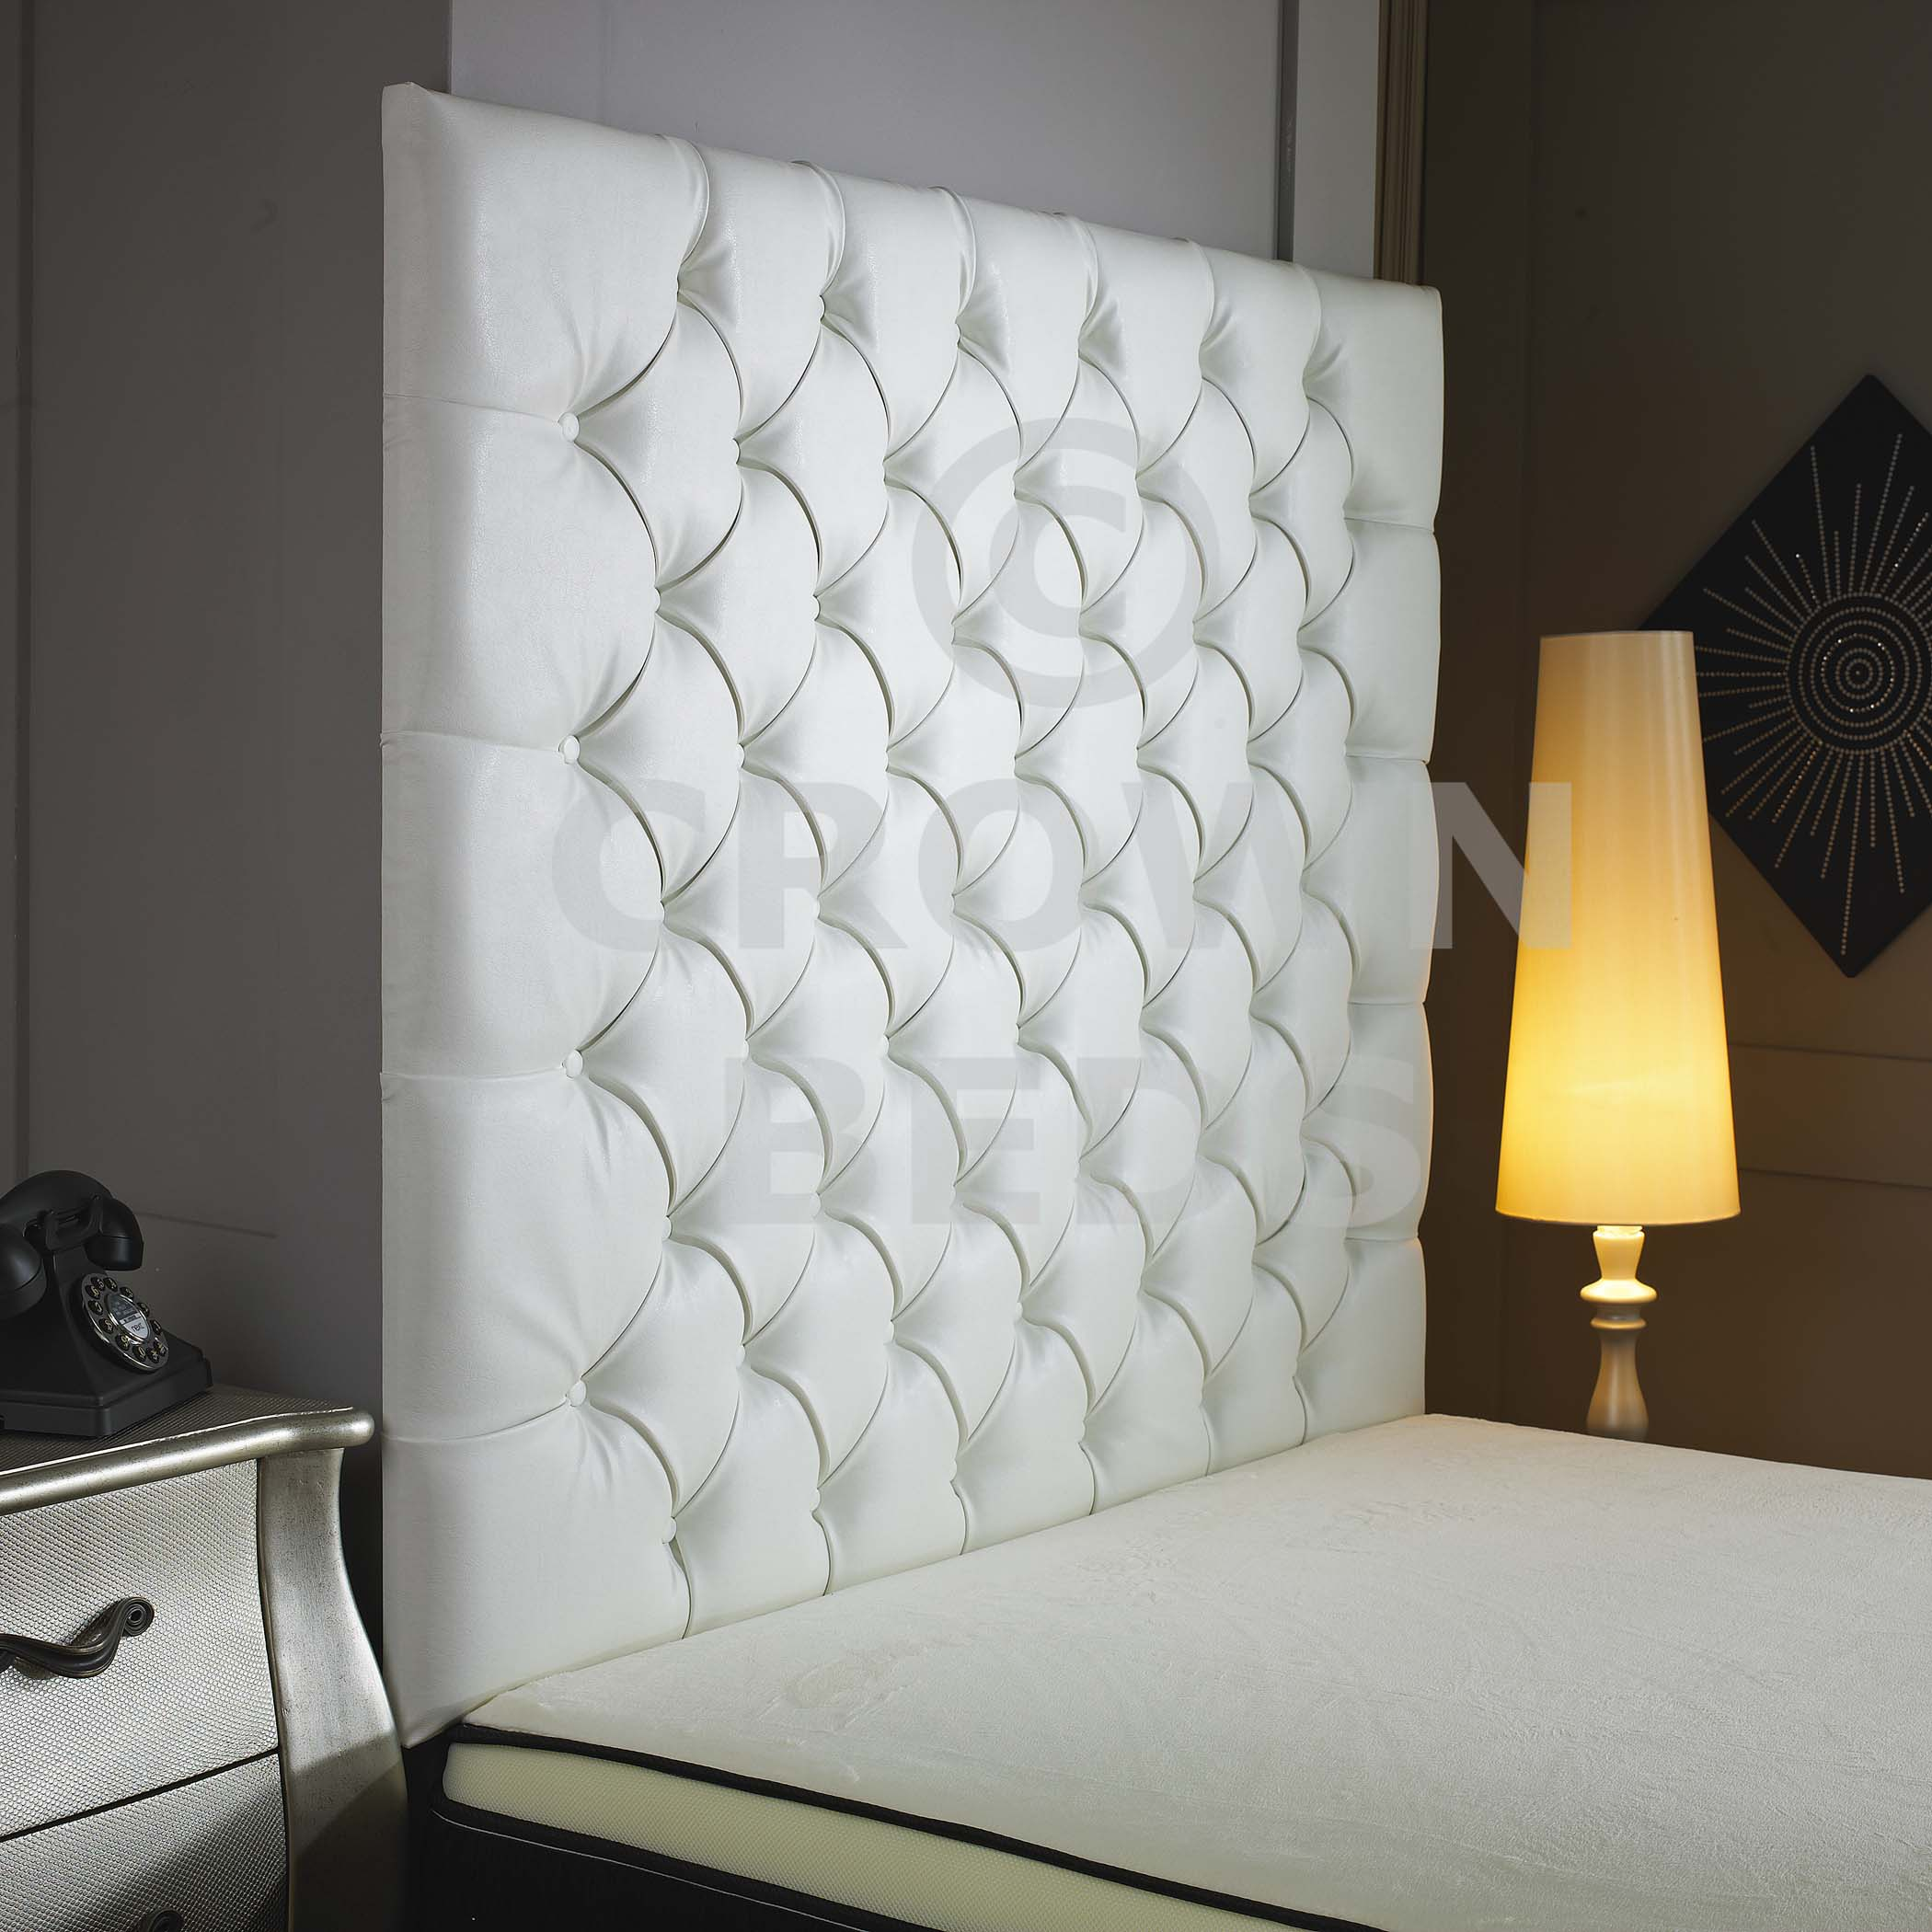 Beds 24hr for Very headboards